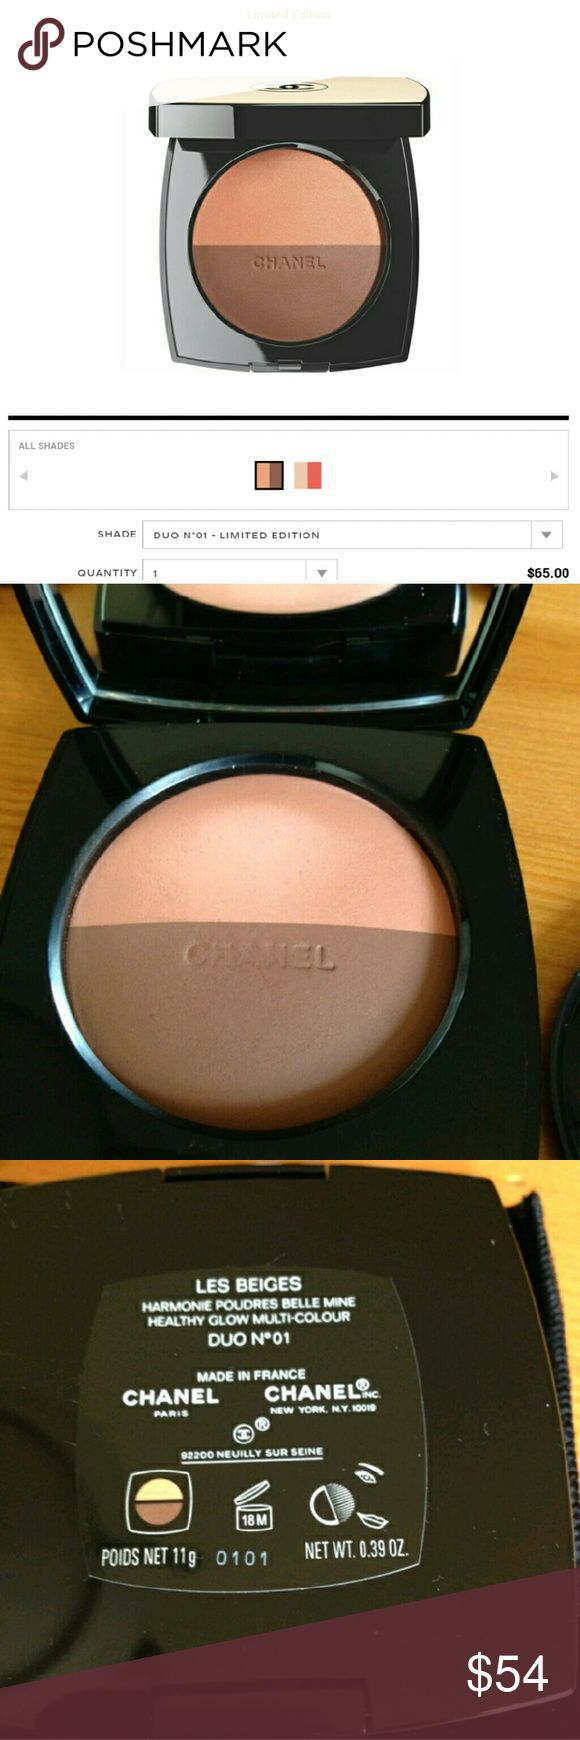 Chanel Les Beiges Healthy Glow Multi Color LE In Duo No 01  Swatched 1x barely, basically brand new, comes with velvet pouch and original brush   NO BOX, EVEN THOUGH SHOWN IN LAST PIC, I NO LONGER HAVE IT  Authentic. Guaranteed   Gorgeous set of colors, but too dark for me, and top color slightly shimmery  Absolutely stunning, my camera doesn't do it justice   Paid $65 plus tax    Check out my items for more high end beauty brands   Top rated seller with glowing reviews, shop with confidence…